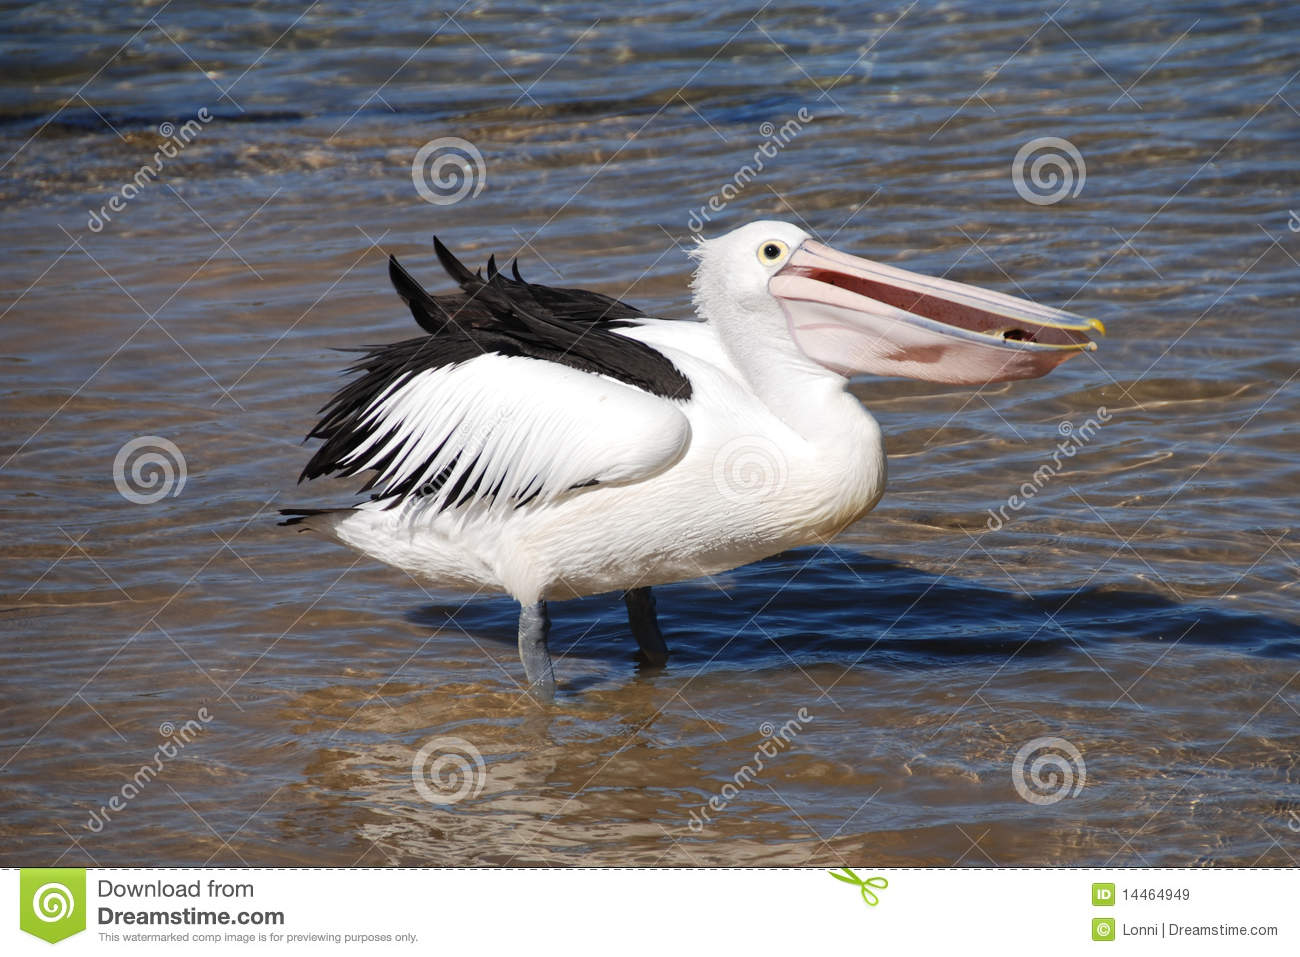 Pelican eating fish royalty free stock images image for Dreaming of eating fish